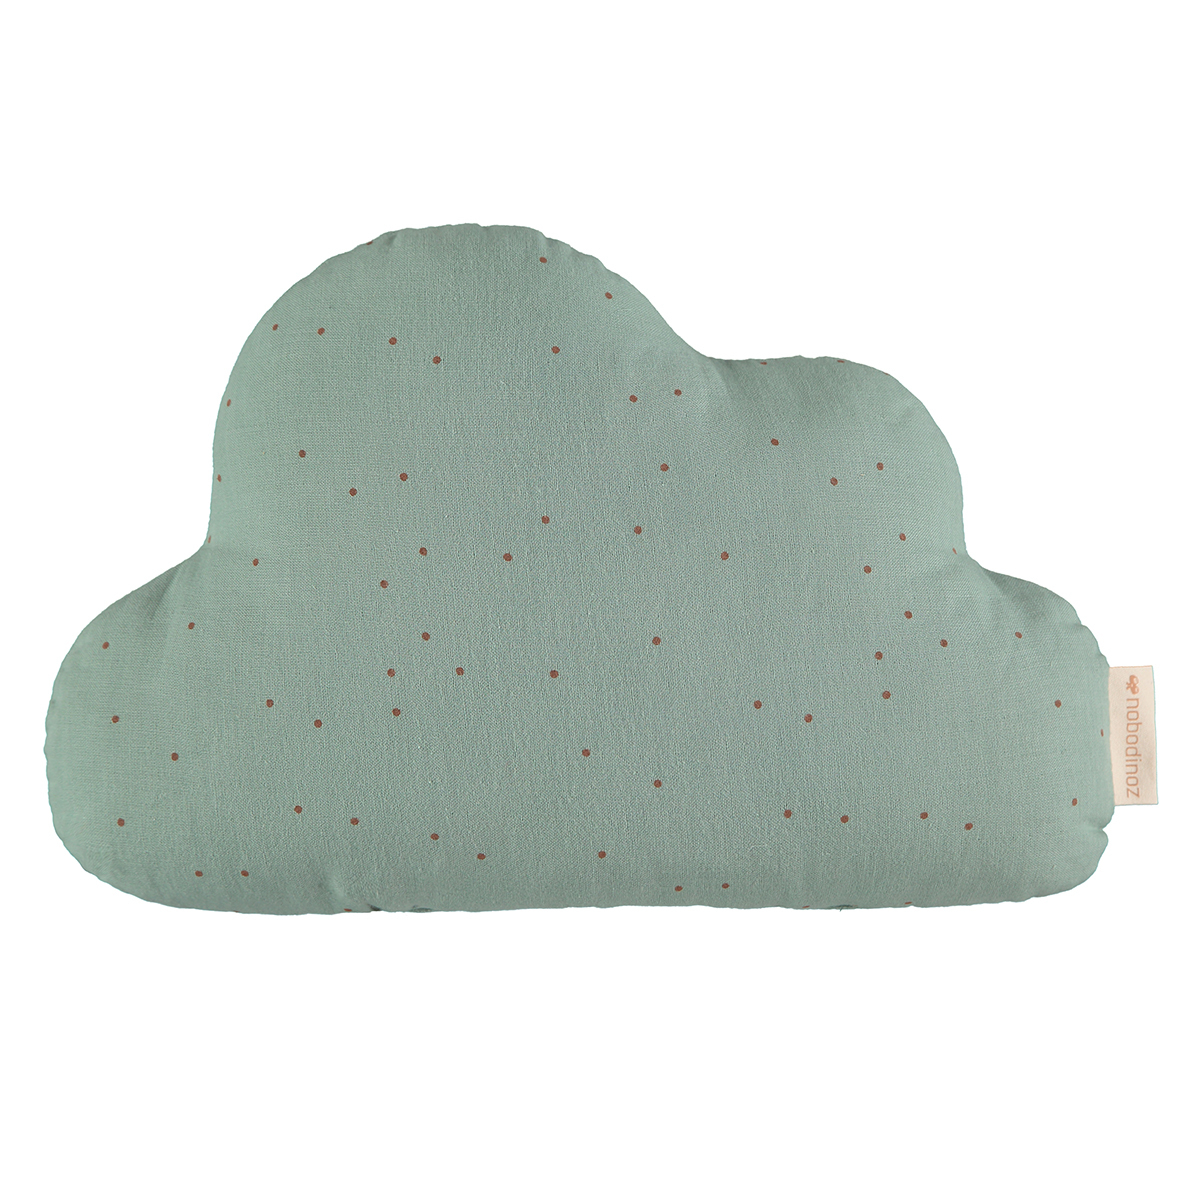 Coussin Coussin Cloud - Toffee Sweet Dots & Eden Green Coussin Cloud - Toffee Sweet Dots & Eden Green